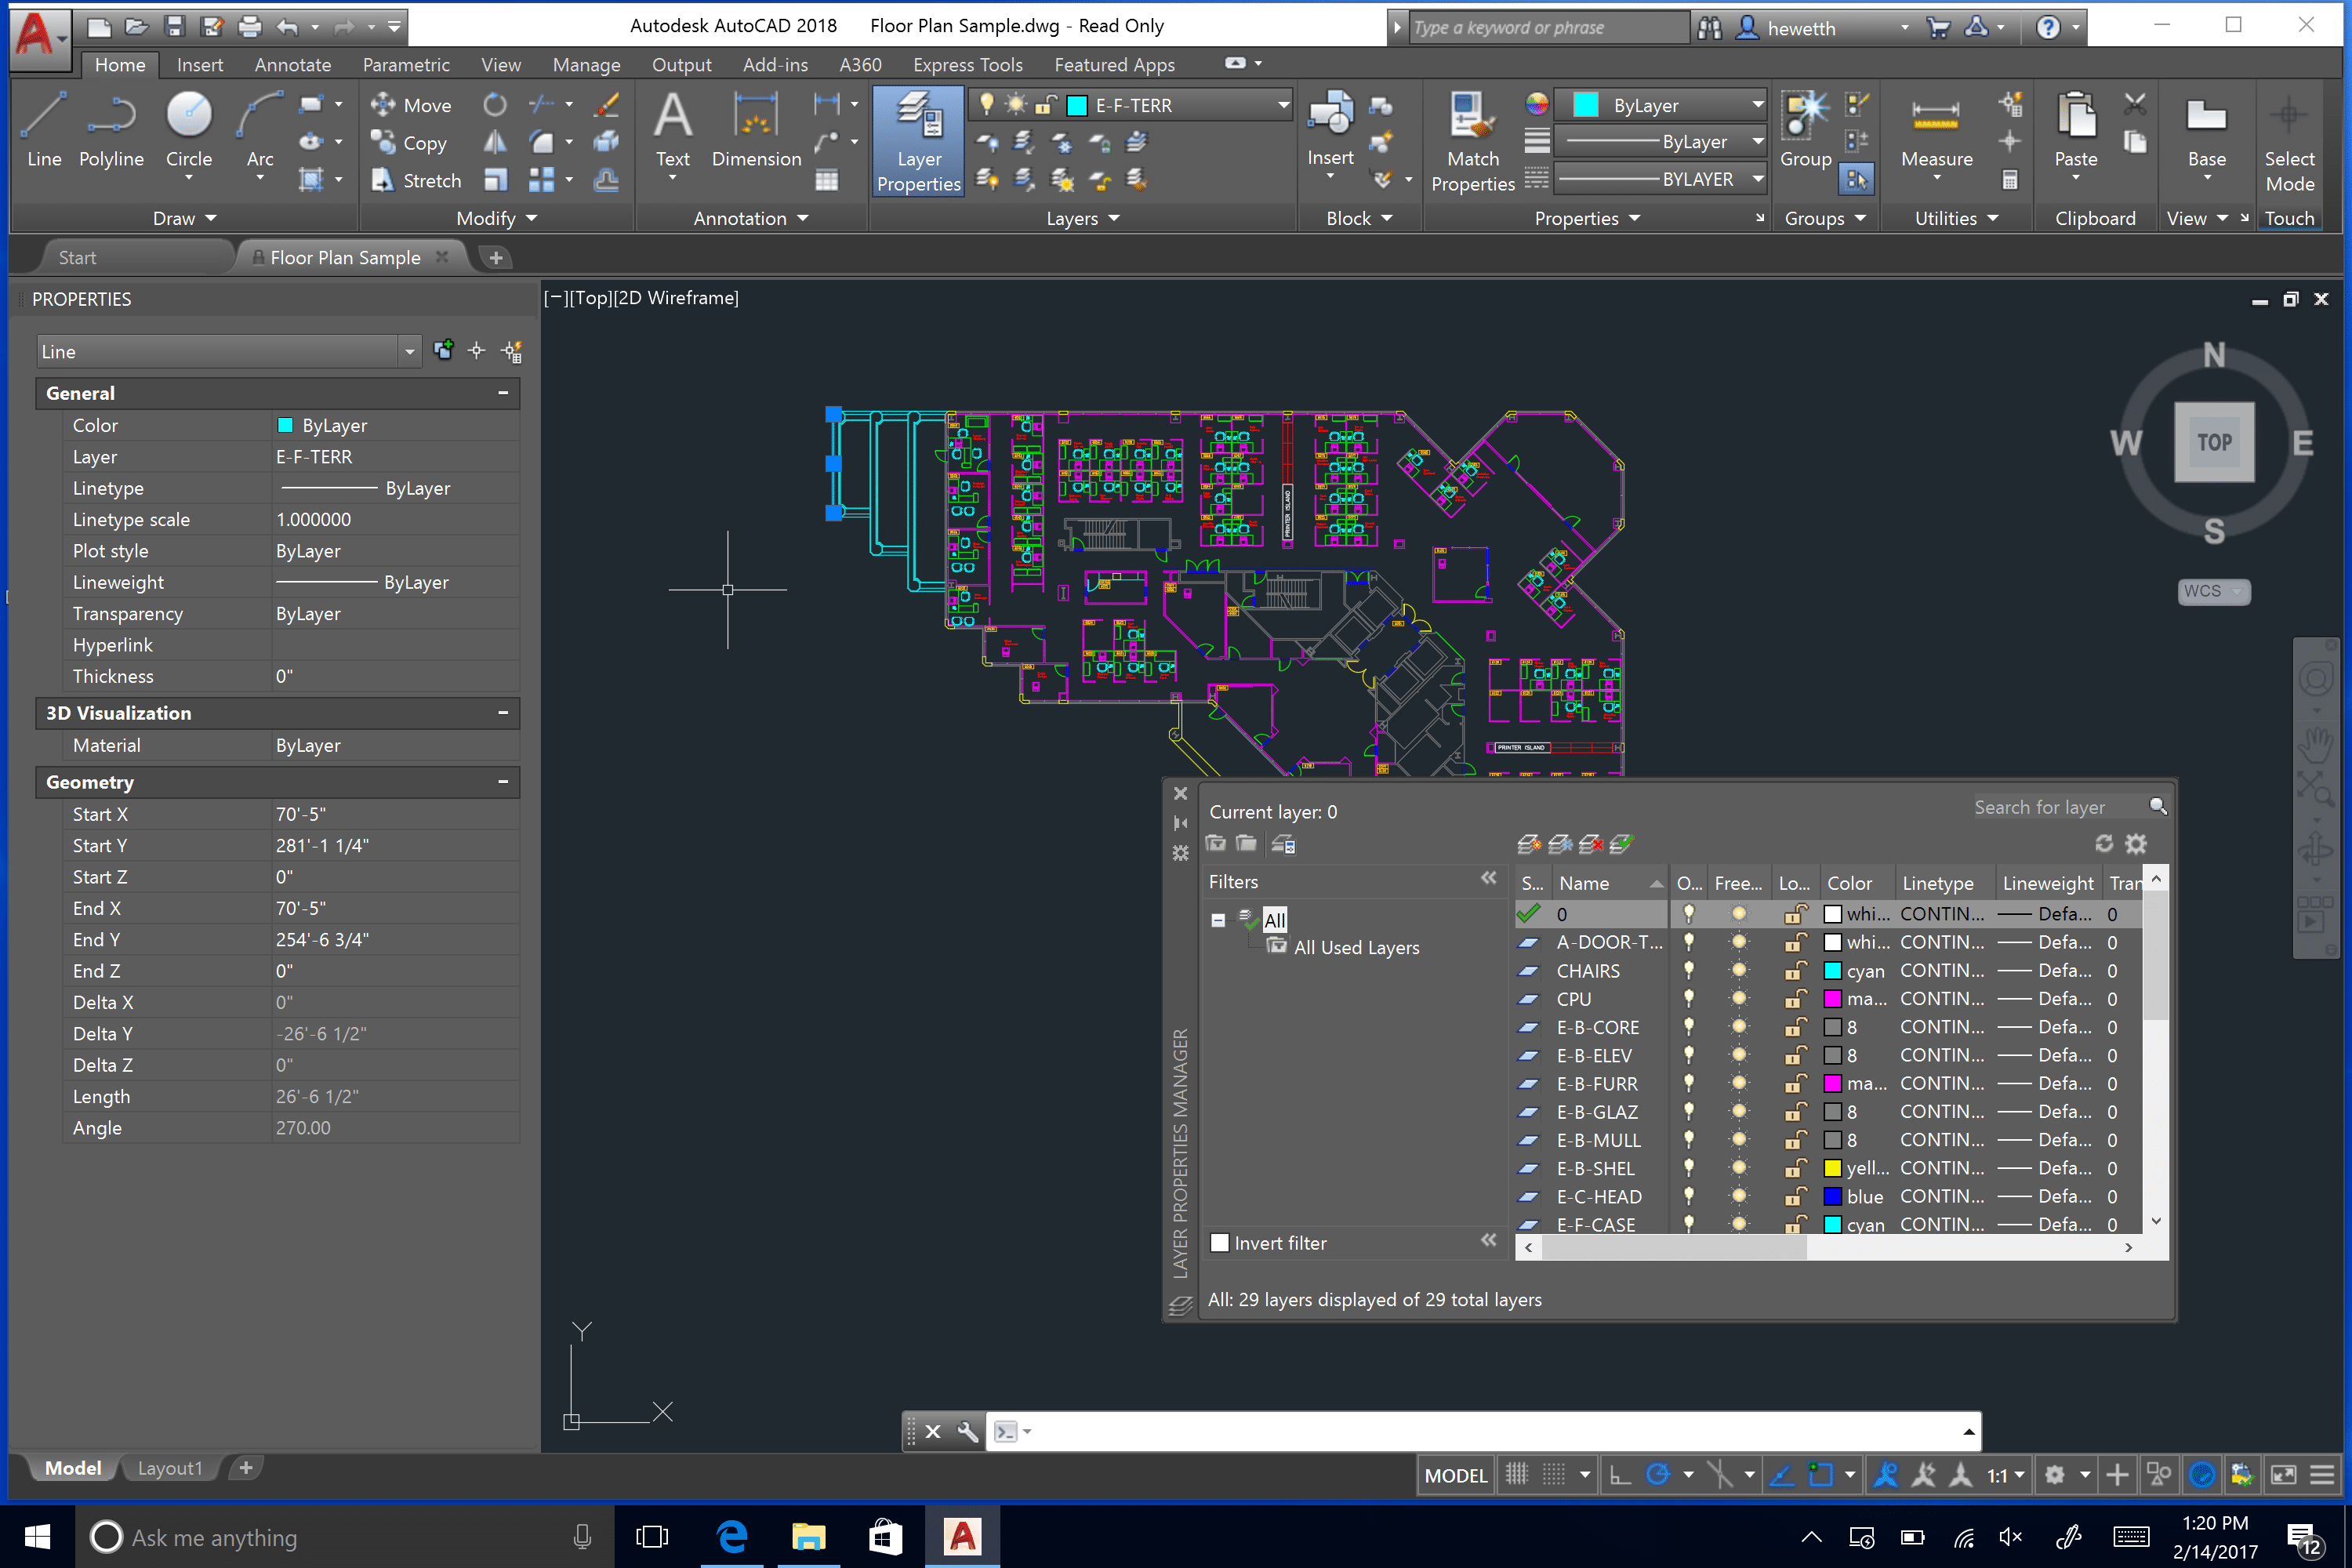 Alta resolución AutoCAD 2018